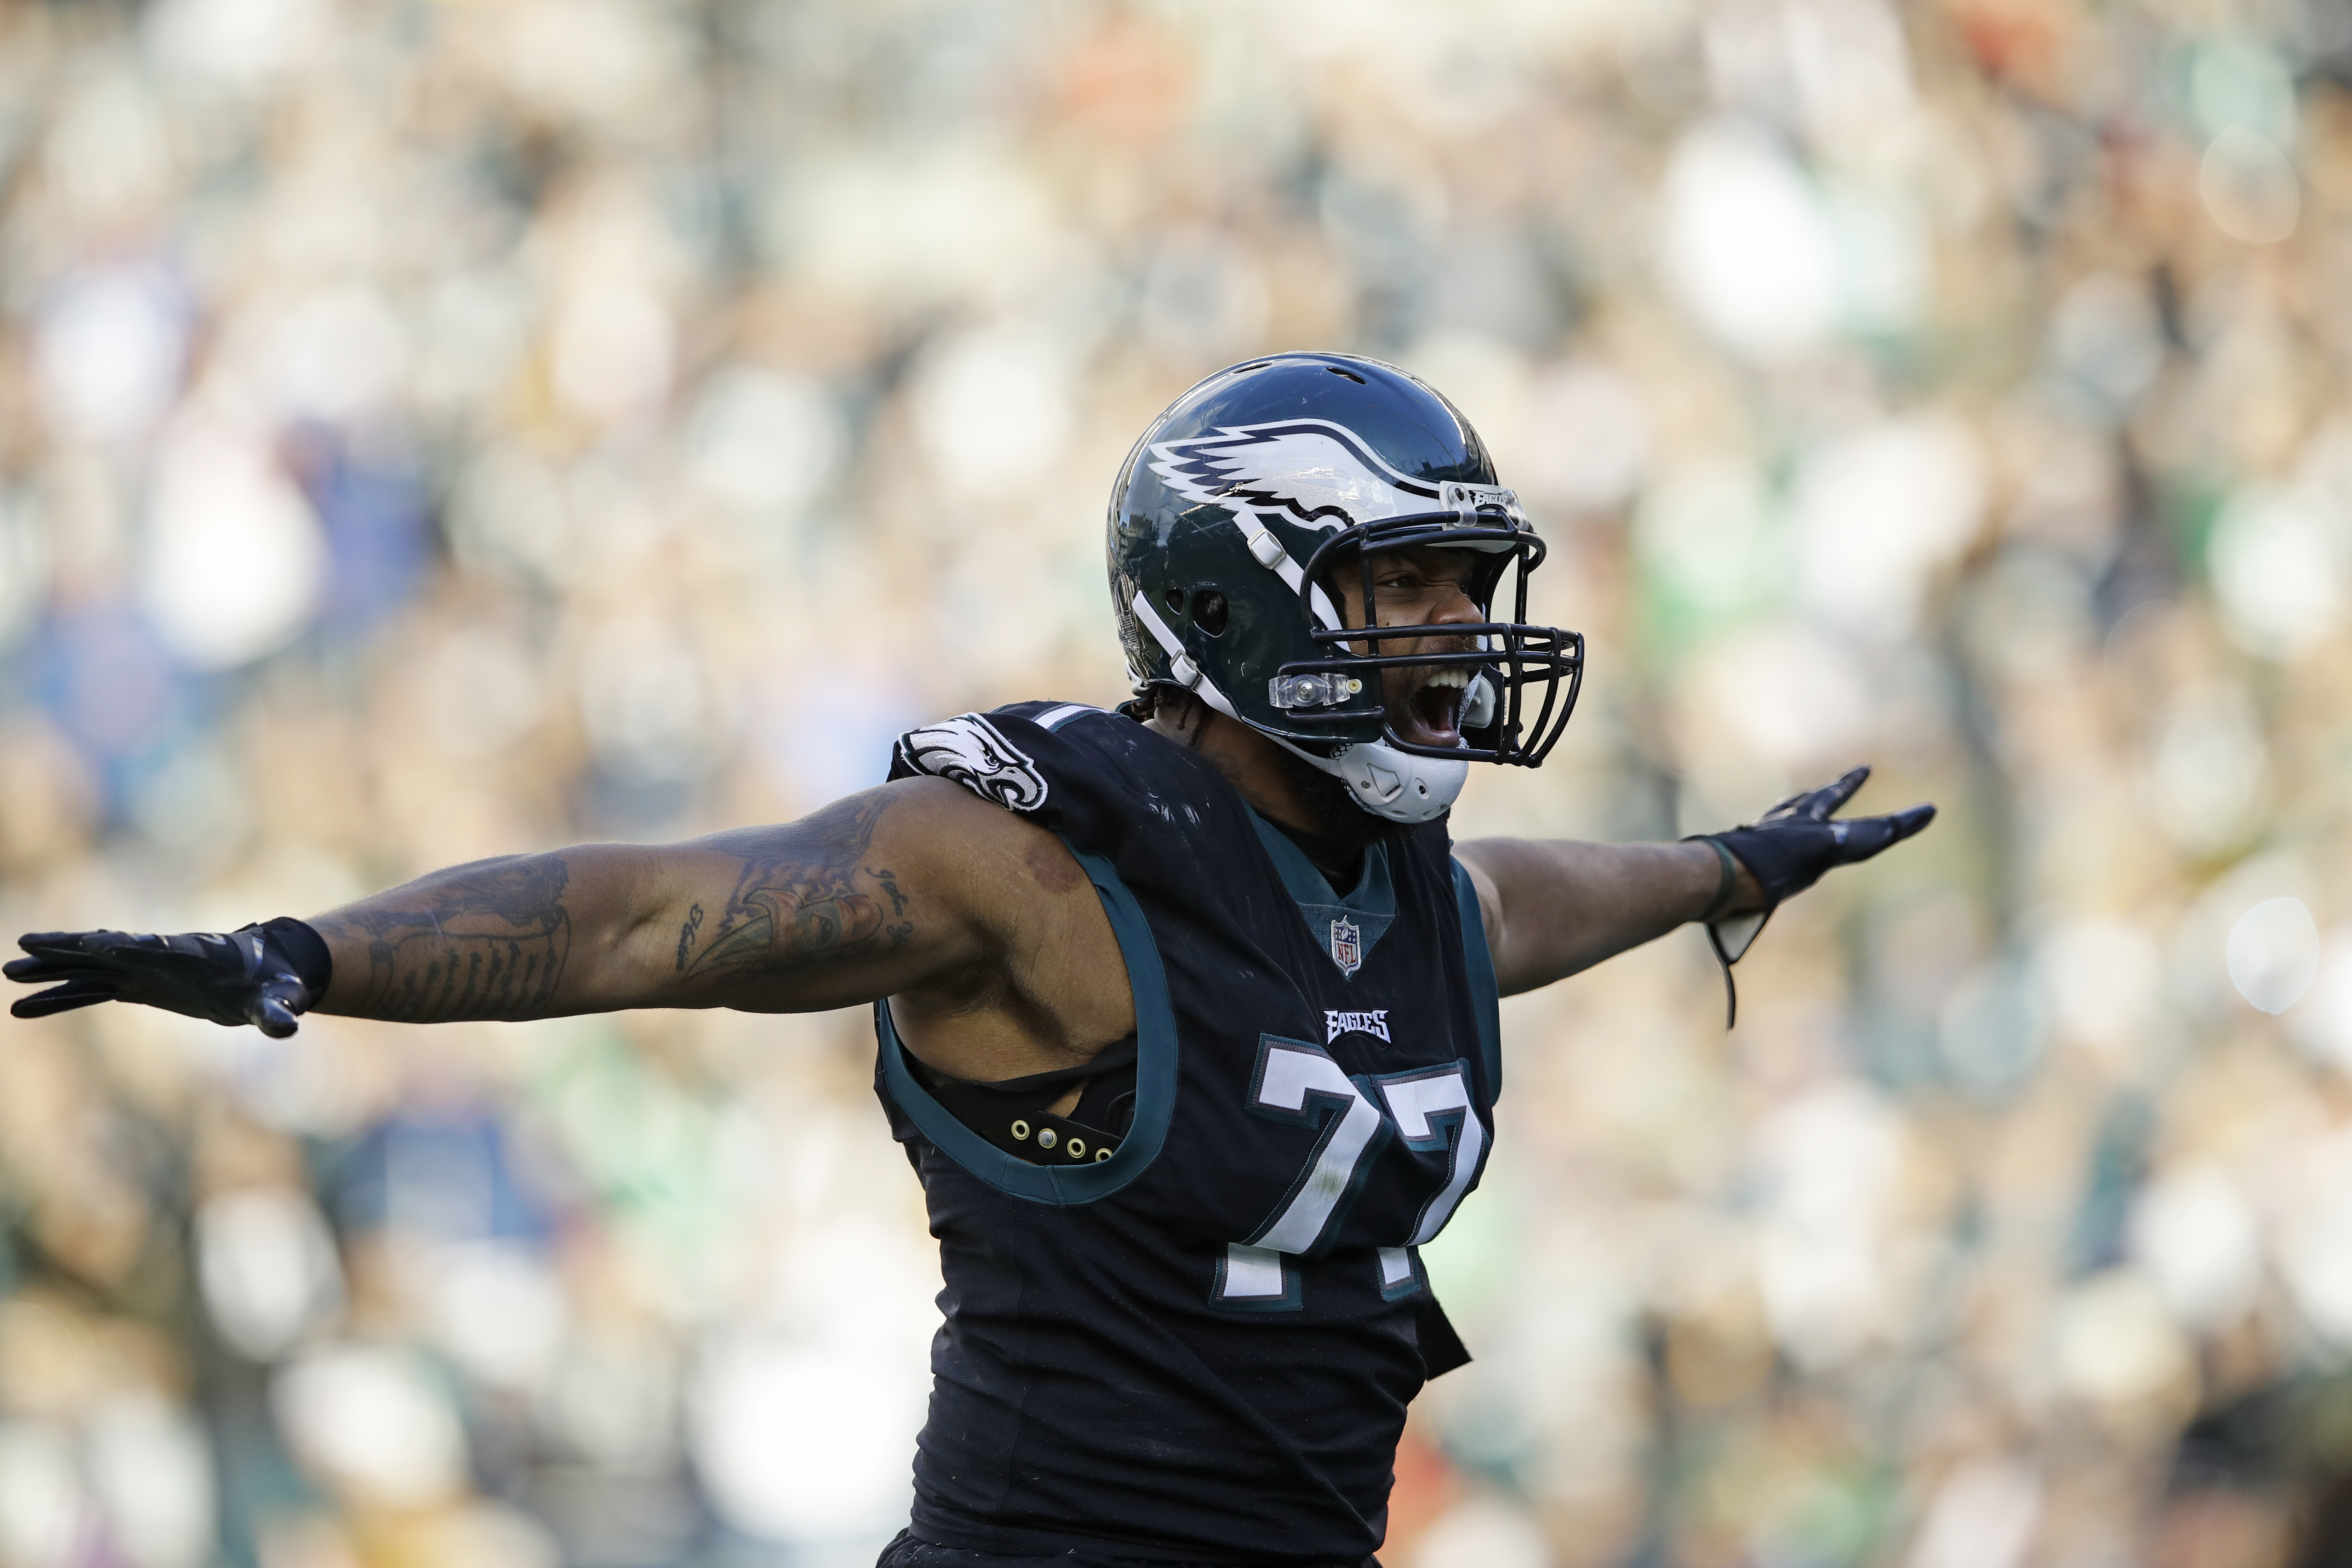 NFL trade rumors: Eagles trade Michael Bennett to Patriots? 4 thoughts, trade details | How will they replace him?